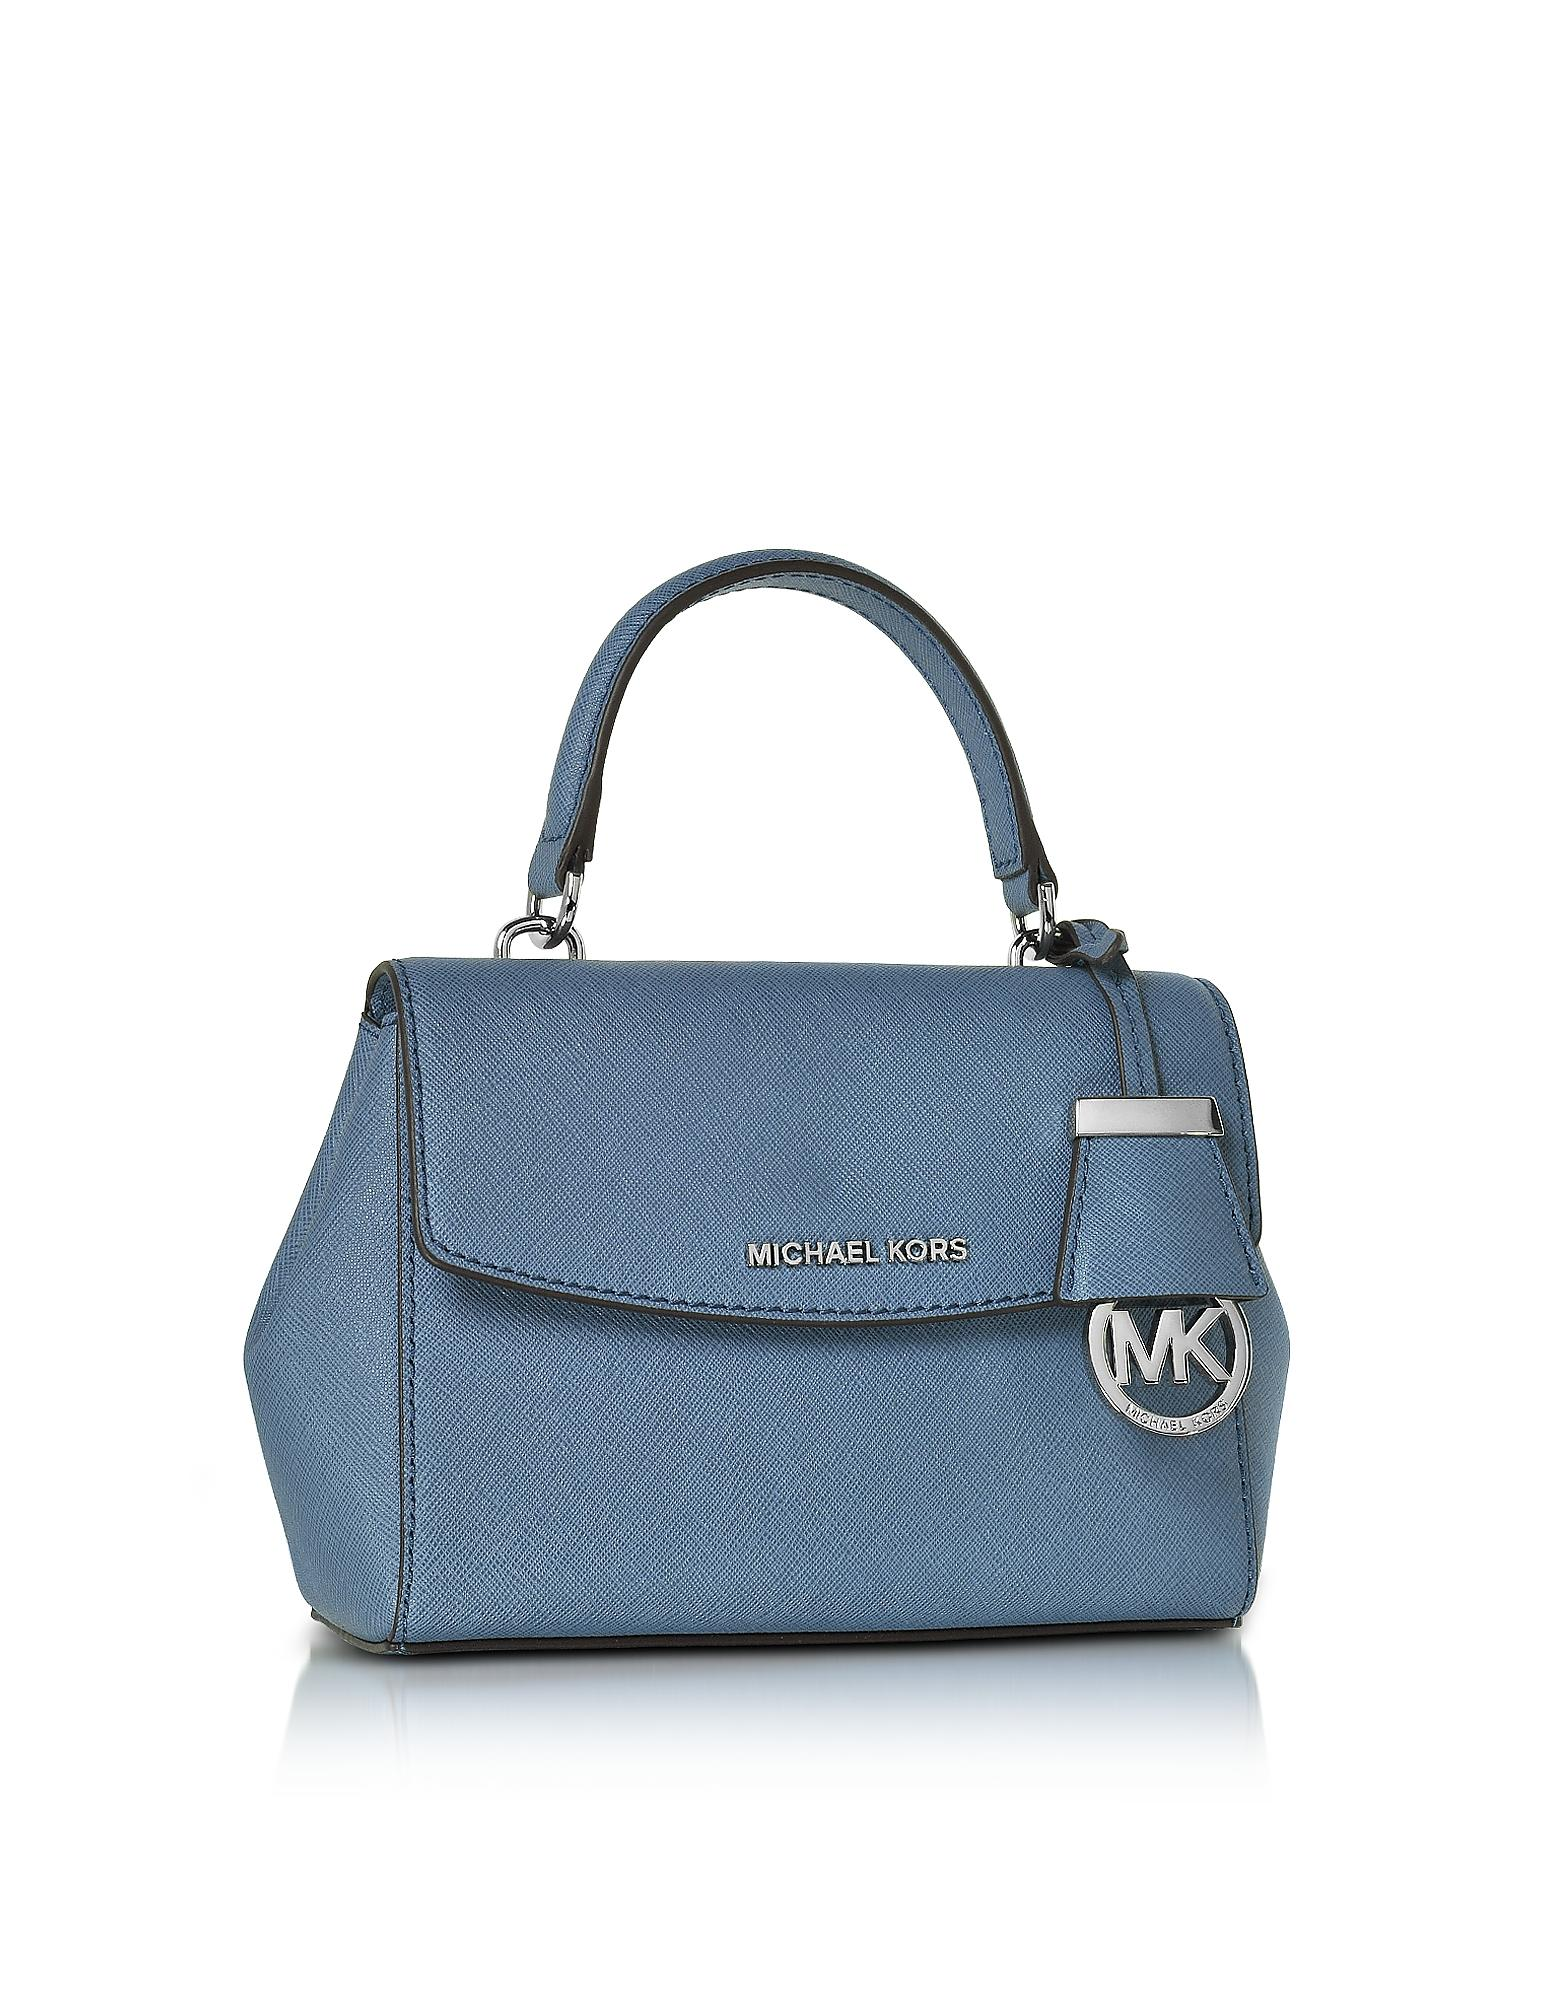 73e0890333d6 Lyst - Michael Kors Ava Xs Denim Saffiano Leather Crossbody Bag in Blue